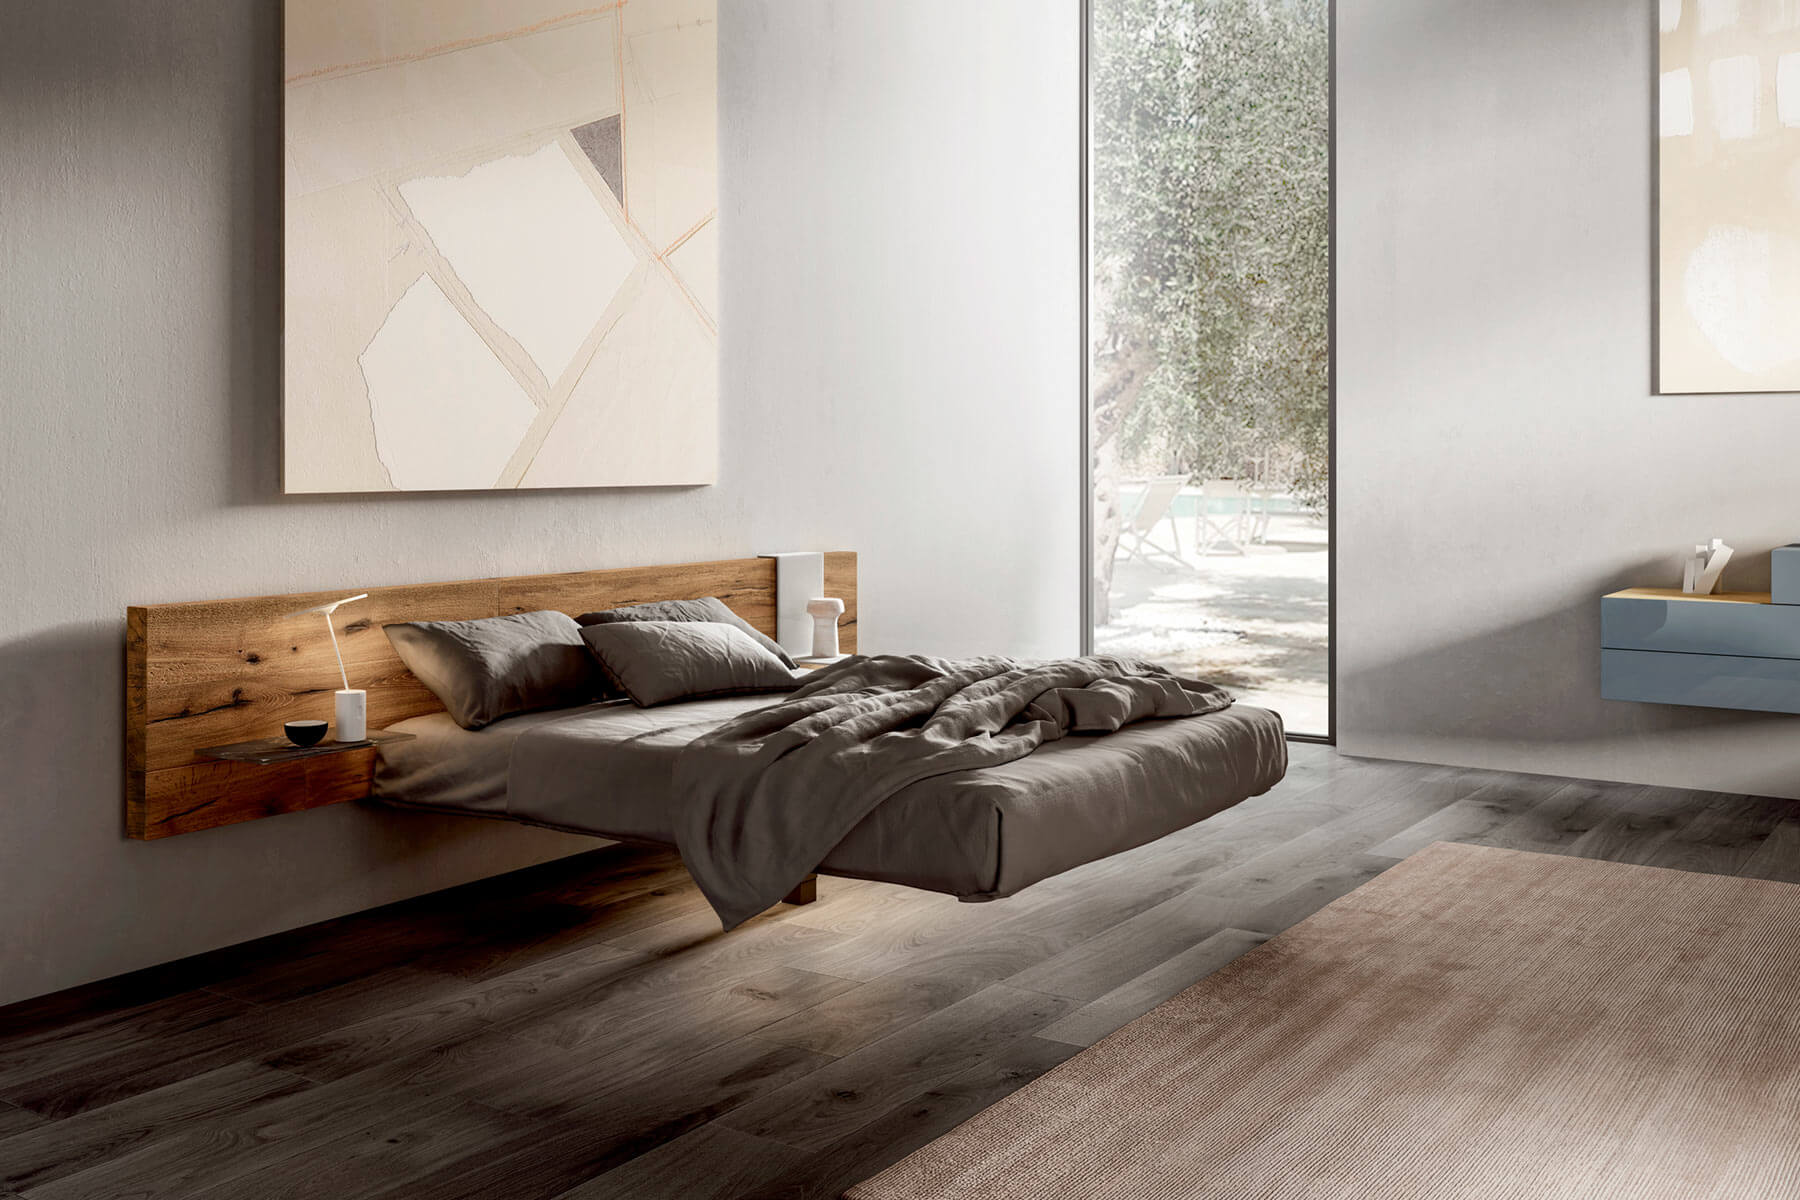 Flutta bed a suspended bed for carefree dreams lago design - Letto matrimoniale rotondo prezzi ...